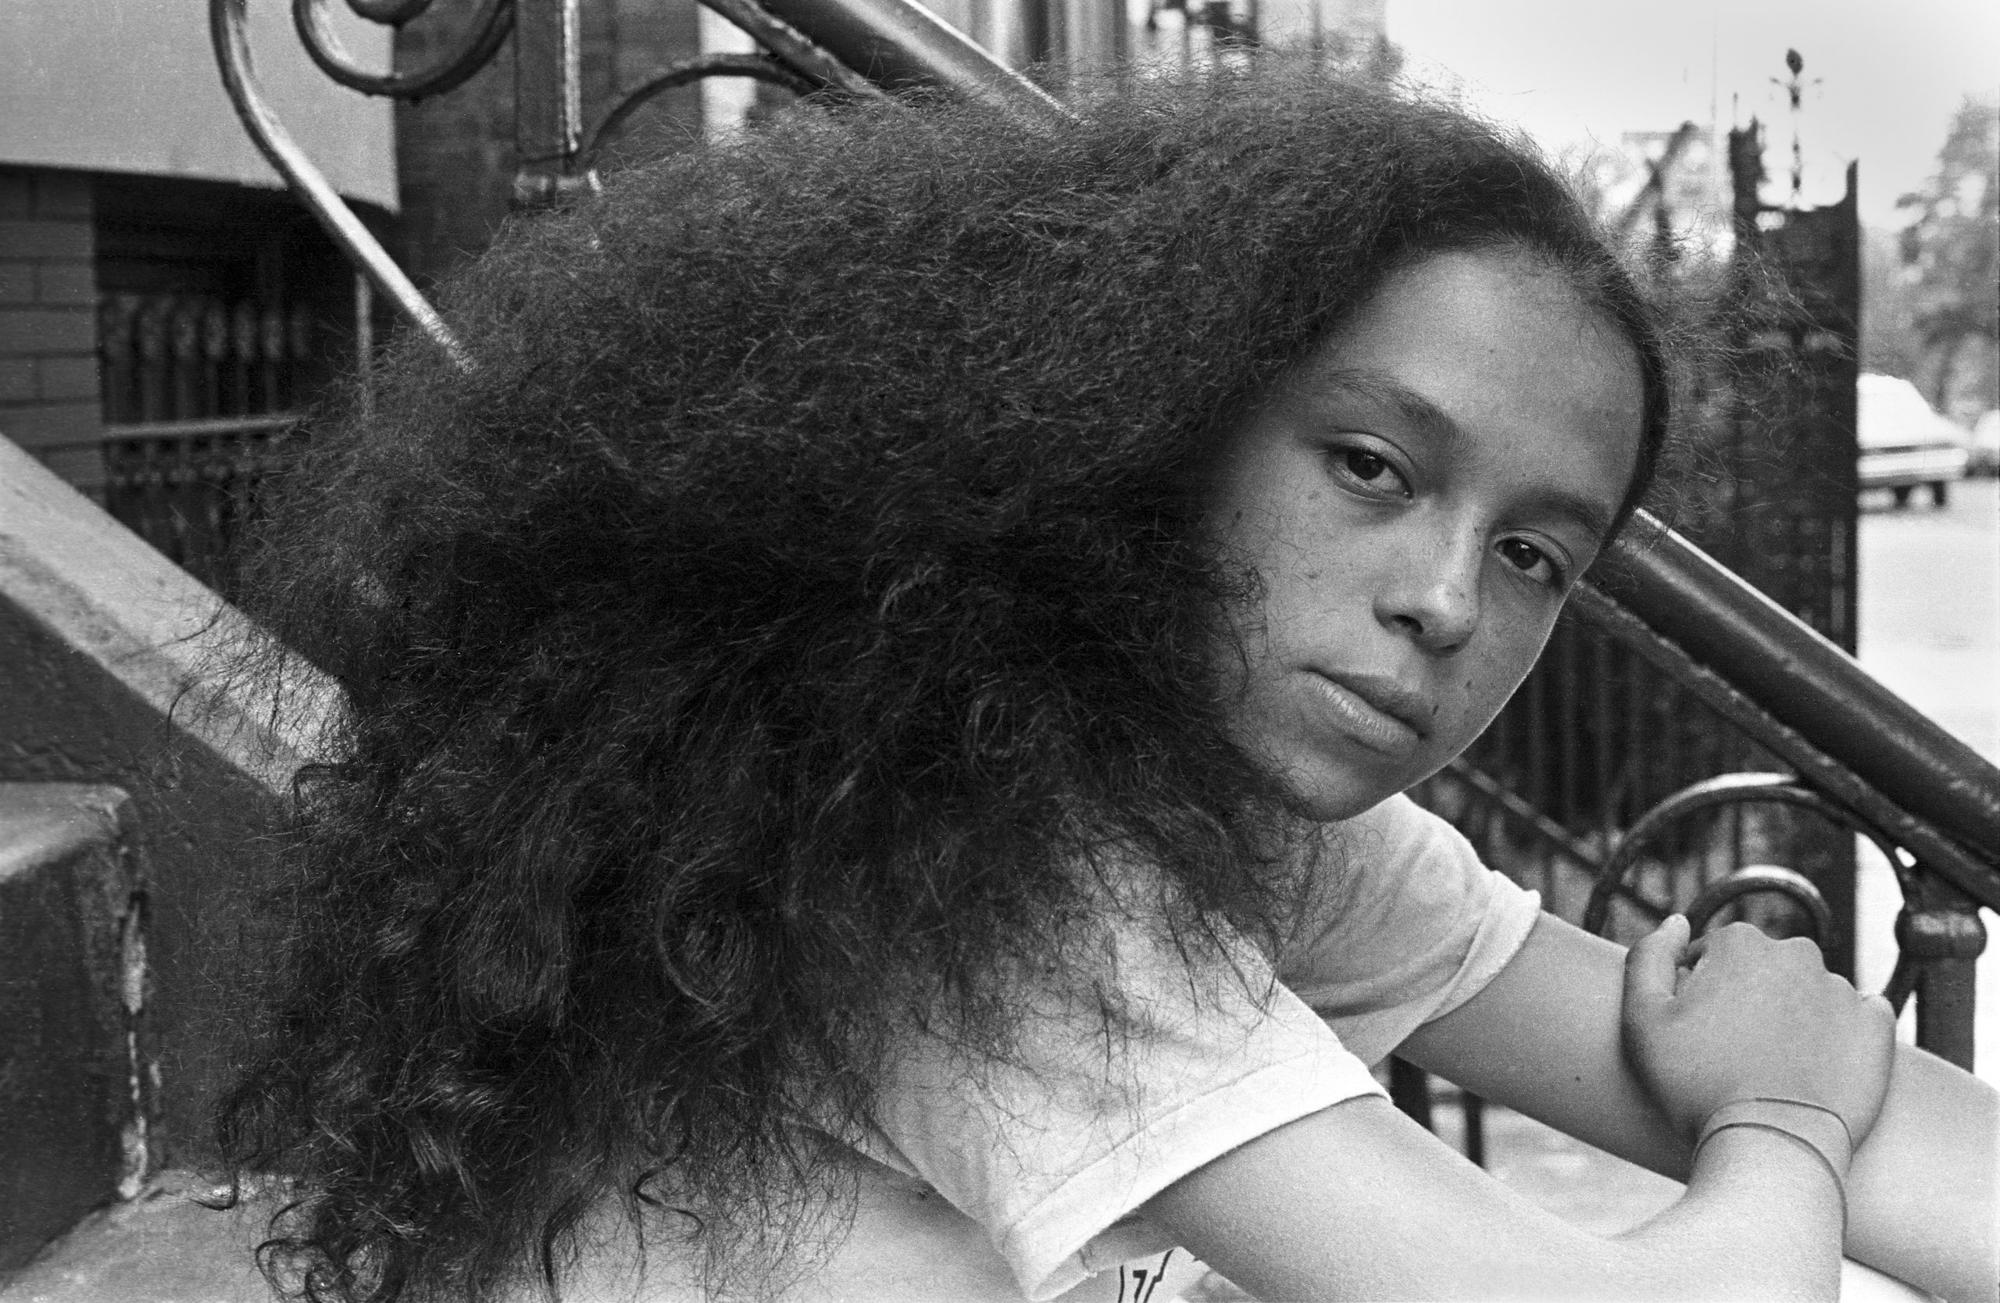 Adeleine, 156th Street, South Bronx, 1984.  Photo by Ricky Flores